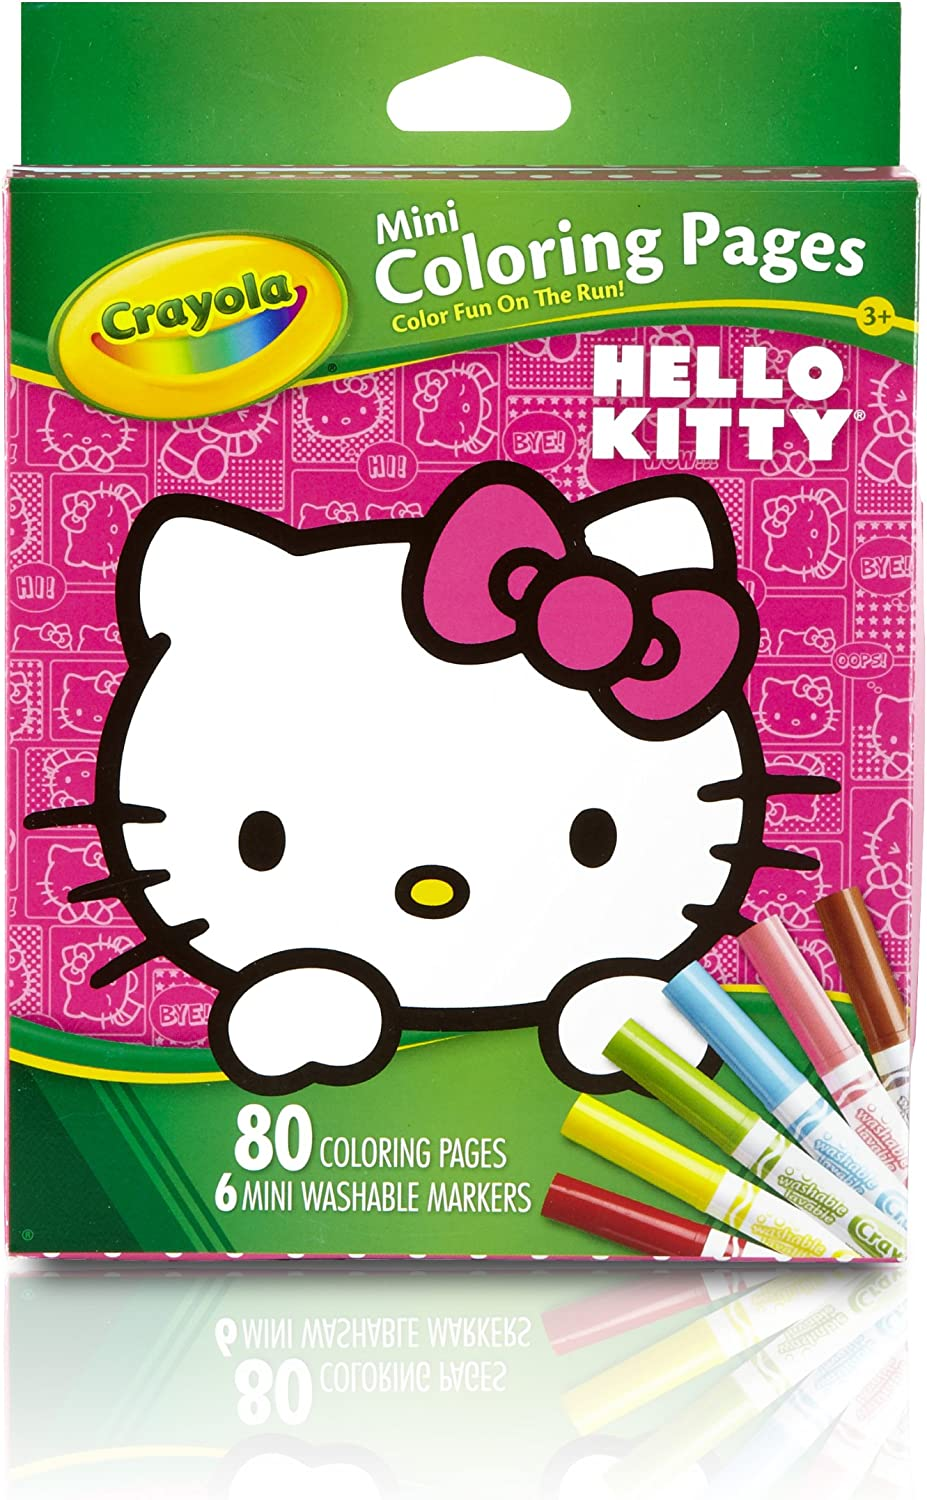 Transparent Hello Kitty Logo Png - Hello Kitty Coloring Pages Hd ... | 1500x926